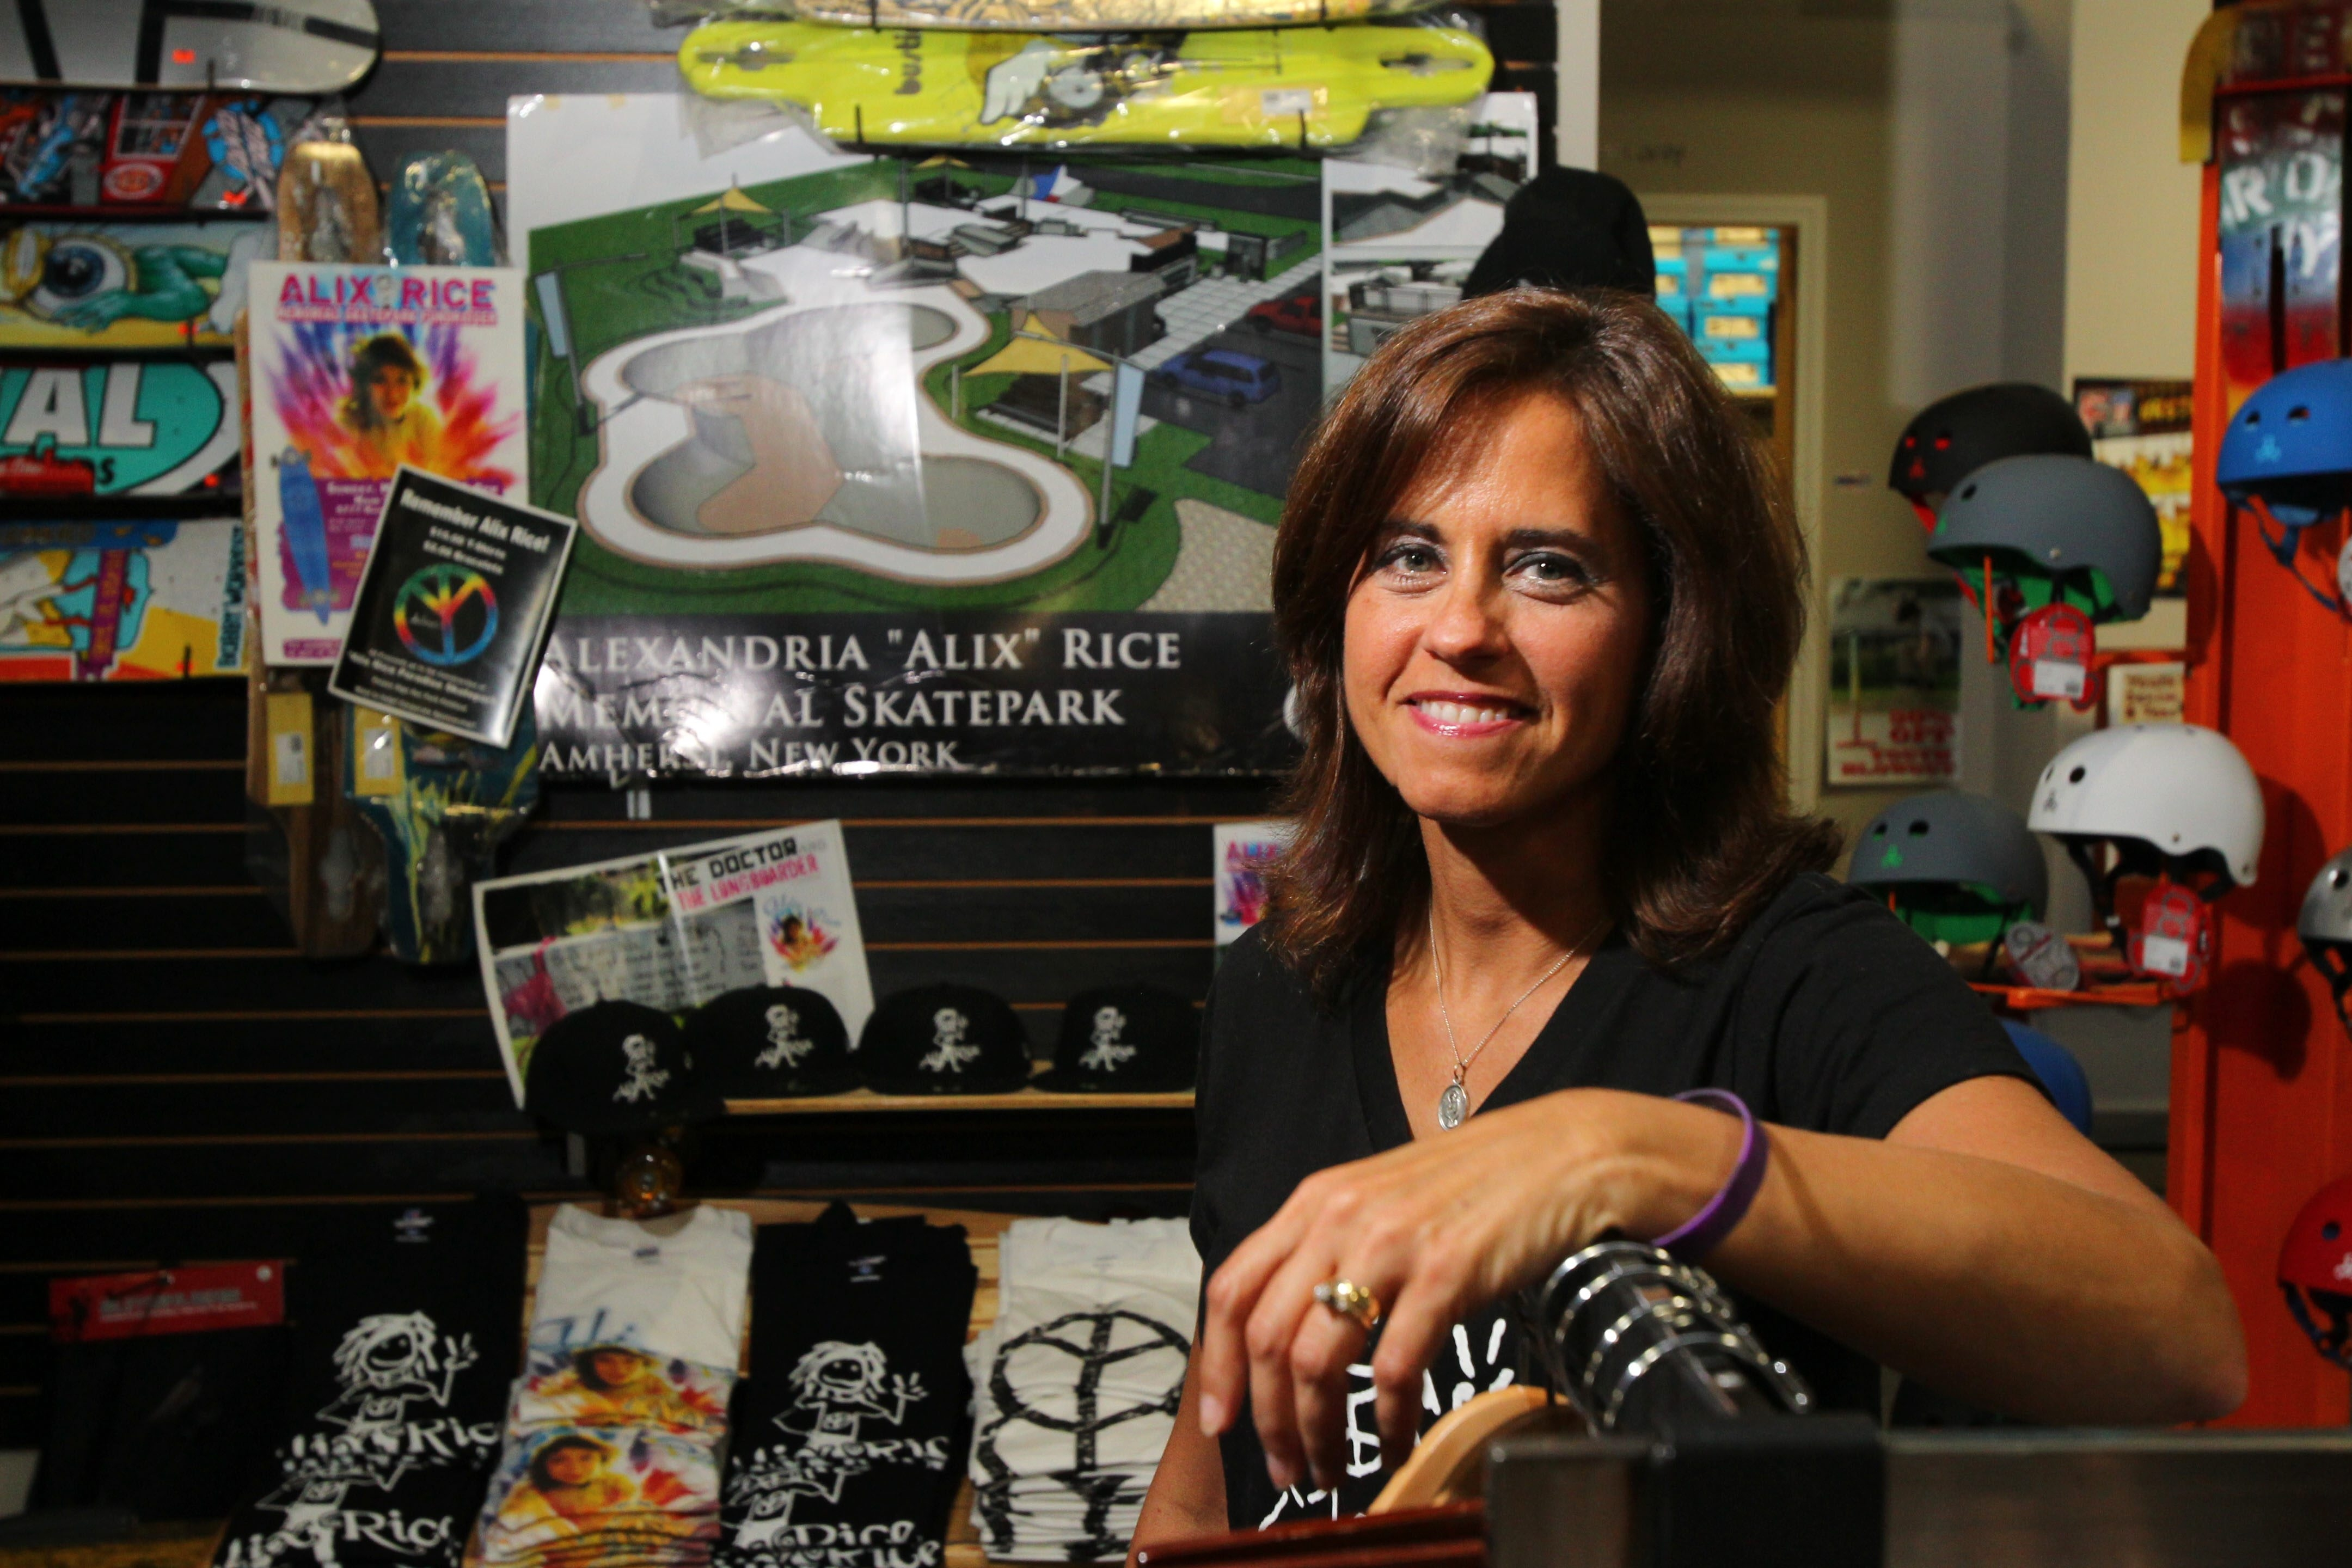 Frances Knab of Getzville has been one of the driving forces behind the creation of a skatepark in Amherst, which will be a memorial to Alix Rice, the 18-year-old long boarder who was killed in 2011 by a drunk driver.